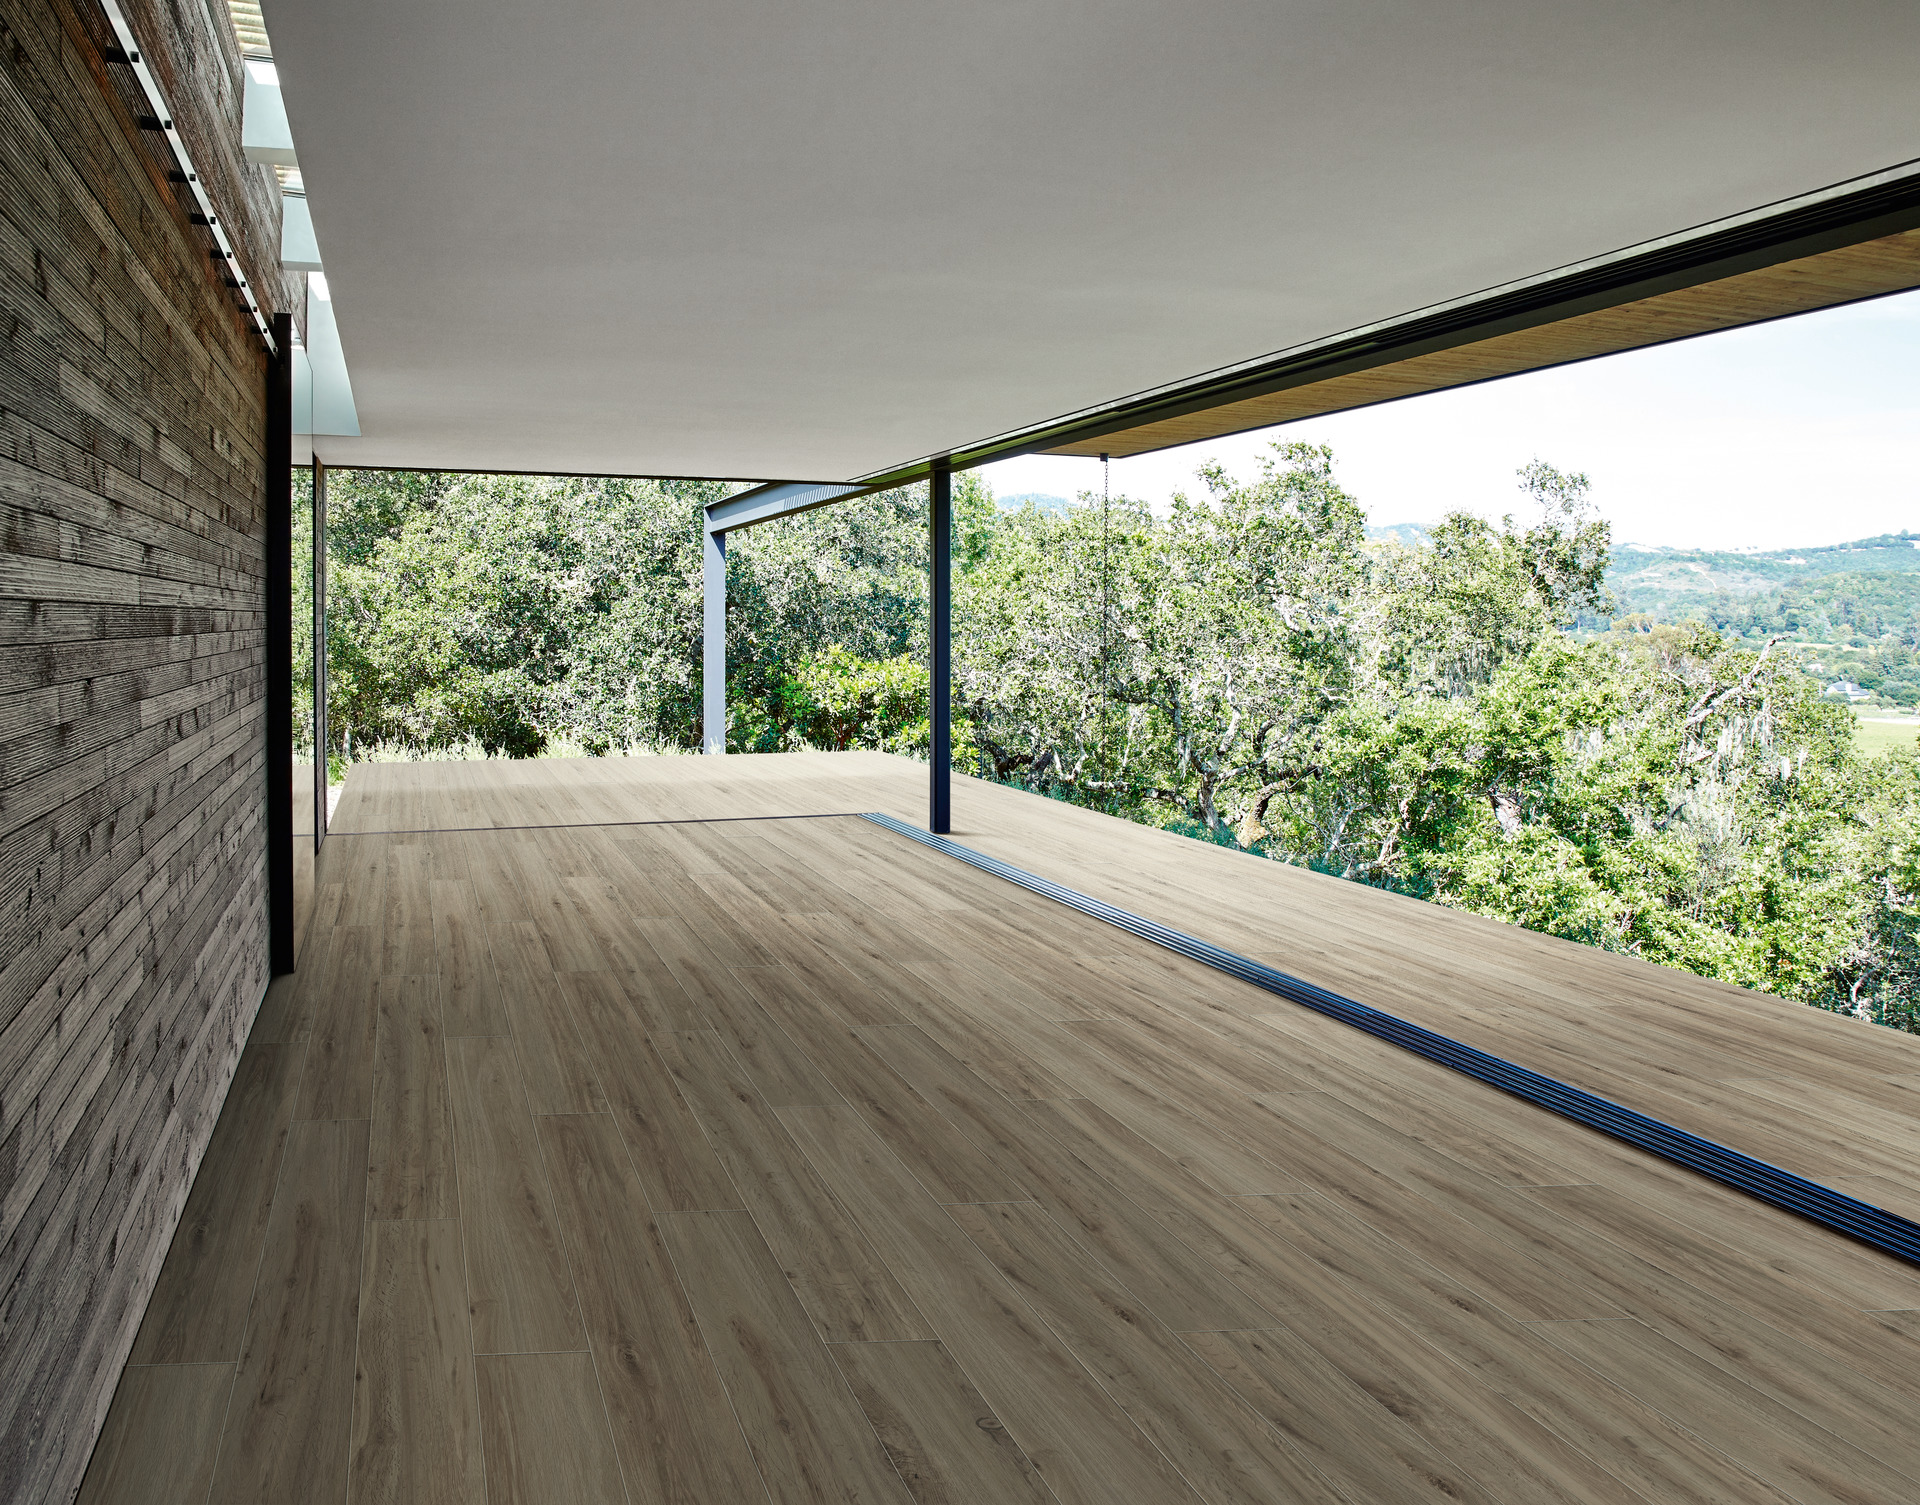 Fliesen in holzoptik marazzi for Fliesen outdoor holzoptik